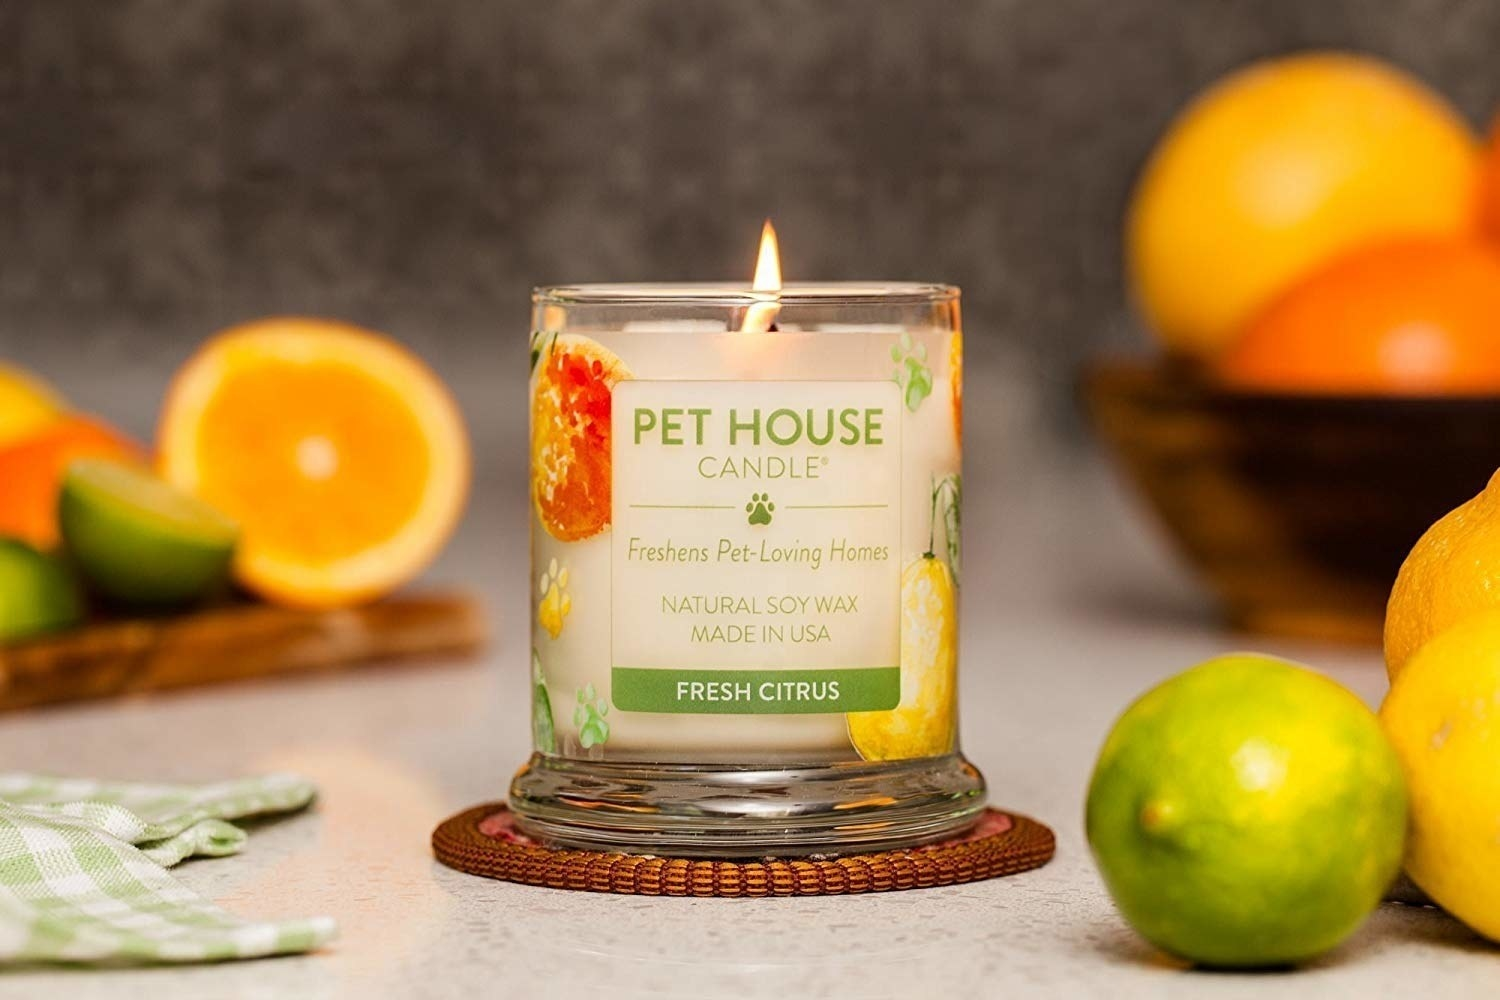 The lit candle in the fresh citrus scent